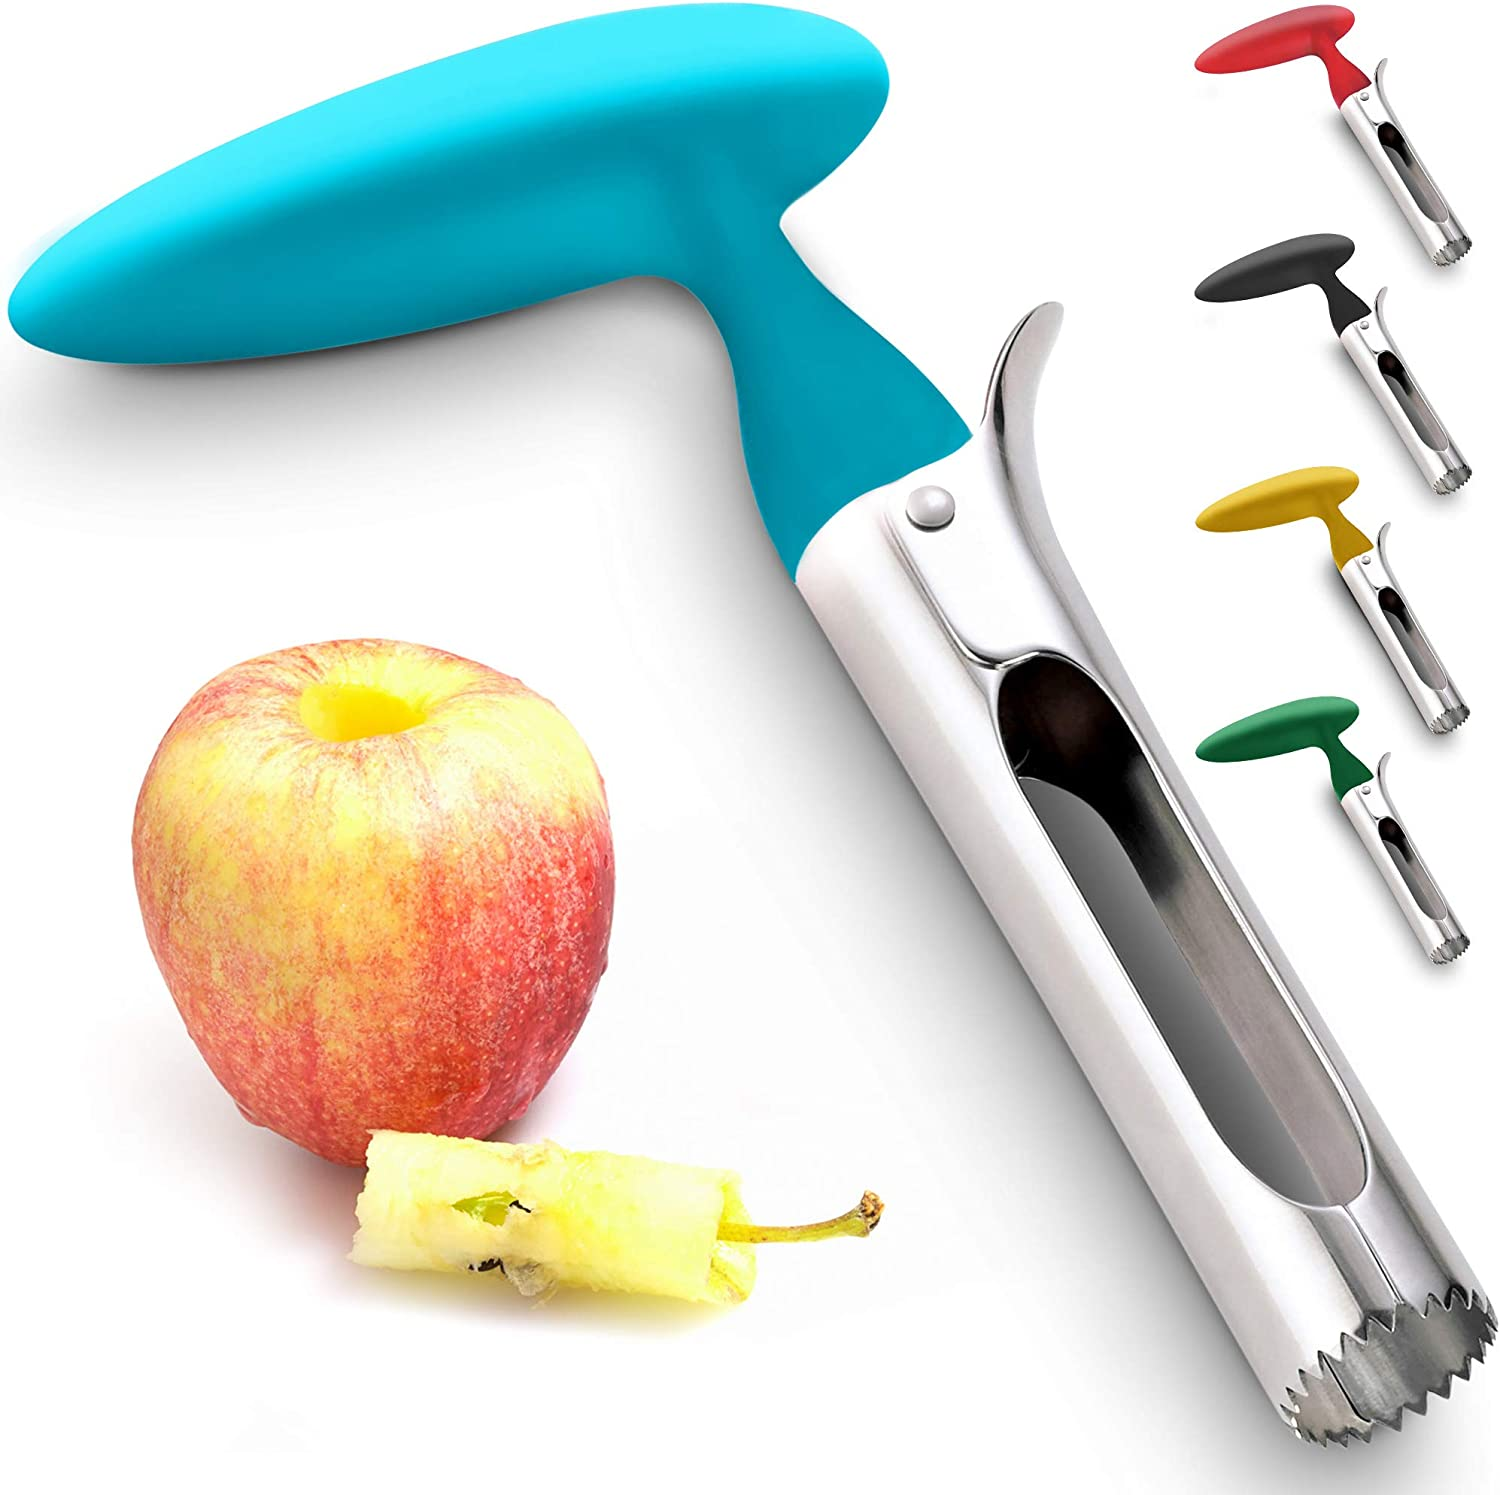 Premium Apple Corer - Easy to Use Durable Apple Corer Remover for Pears, Bell Peppers, Fuji, Honeycrisp, Gala and Pink Lady Apples - Stainless Steel Best Kitchen Gadgets Cupcake Corer - Zulay Blue